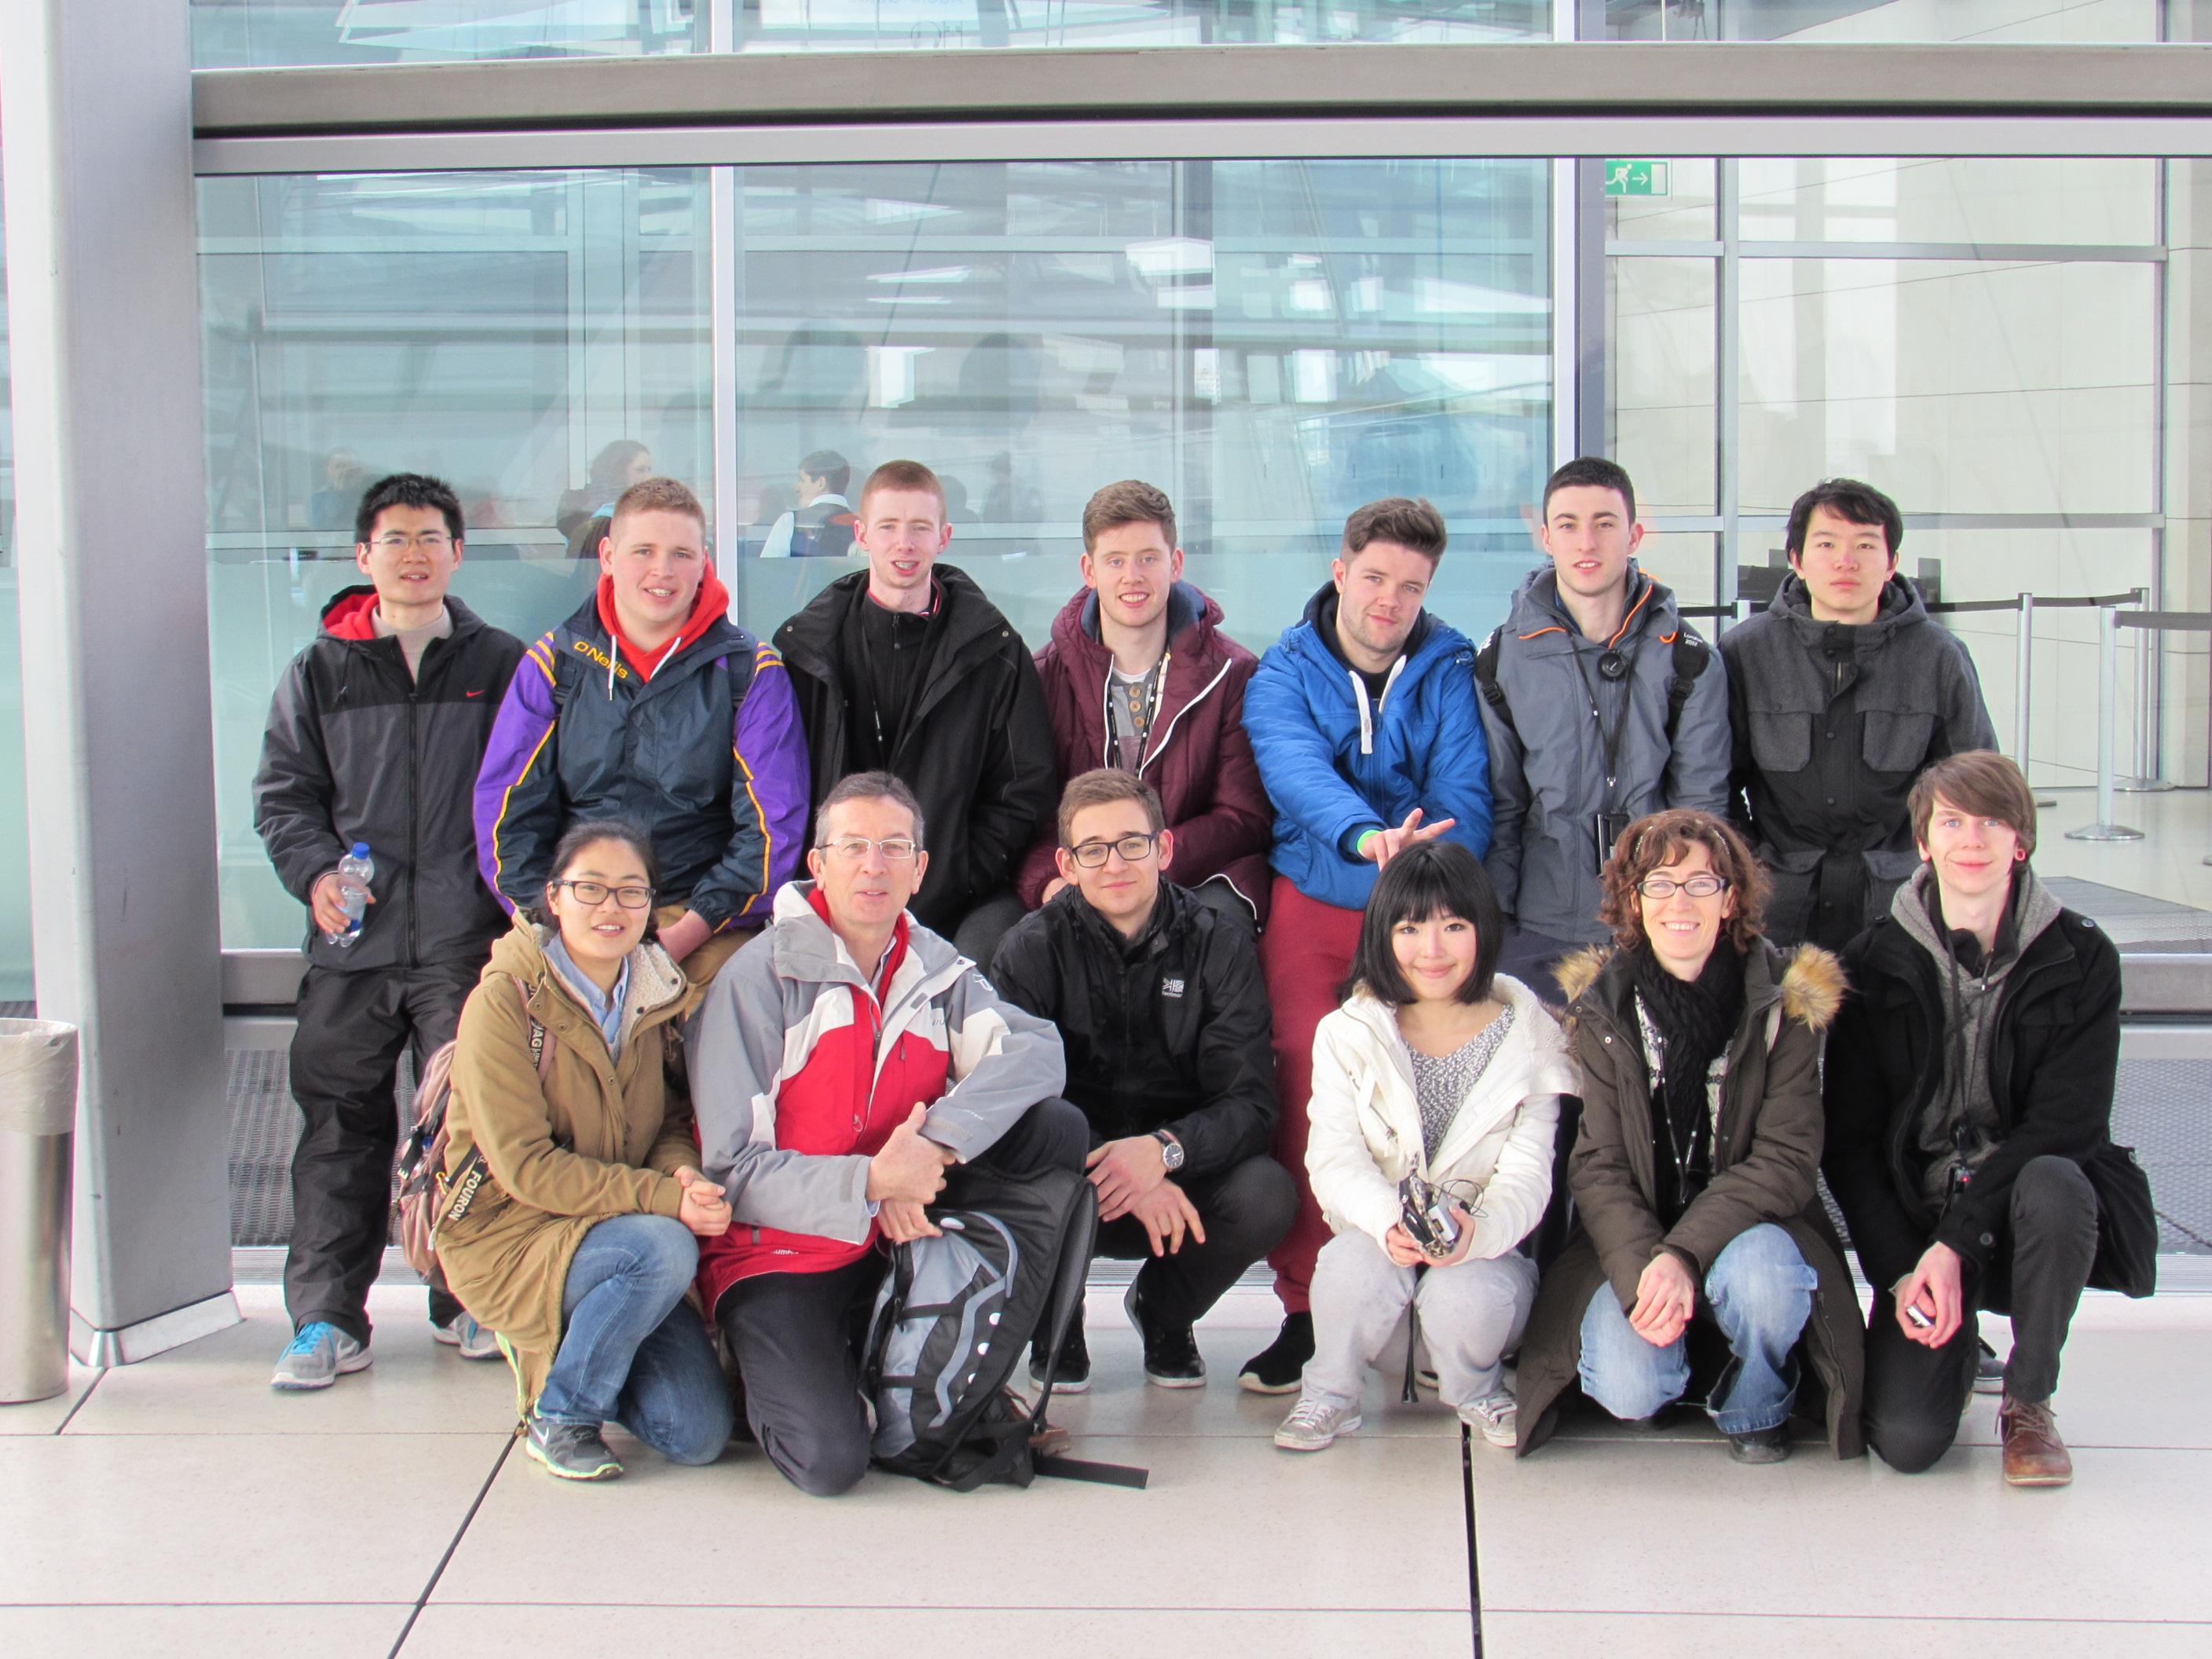 2nd Year BSc QS & BSc CME students visiting Berlin as part of a study trip.